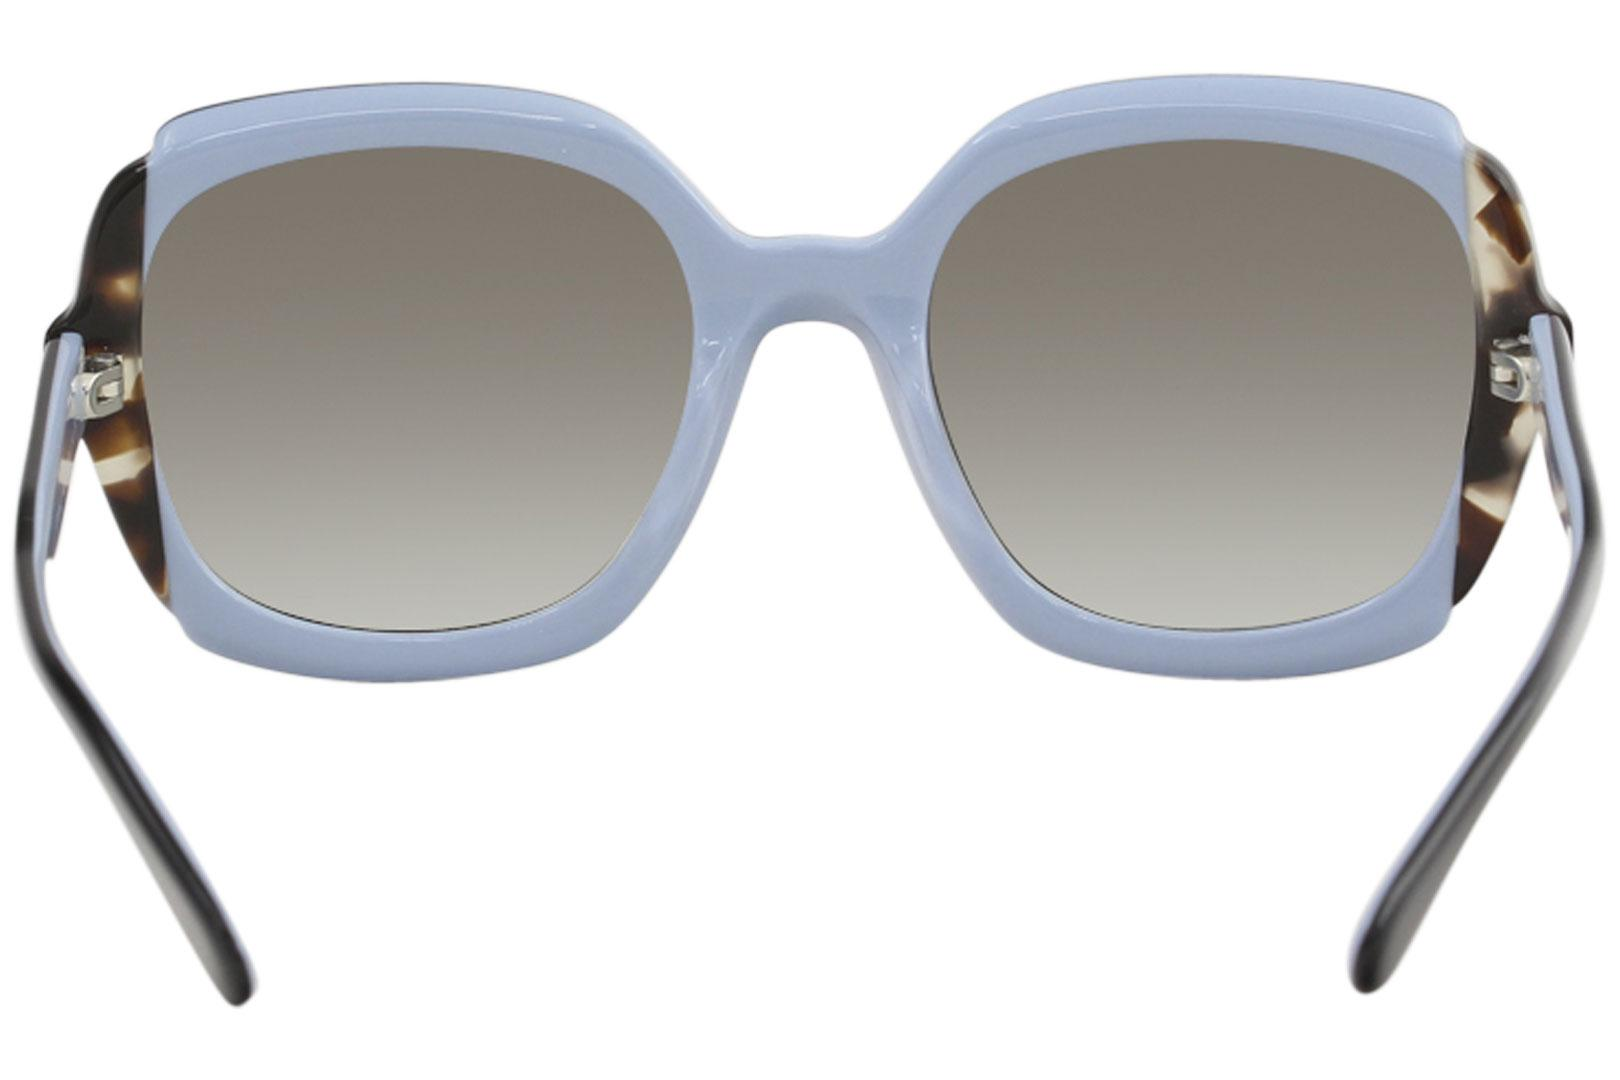 273892b817 ... ireland prada womens spr16u spr 16u fashion square sunglasses by prada.  hover to zoom 6ca73